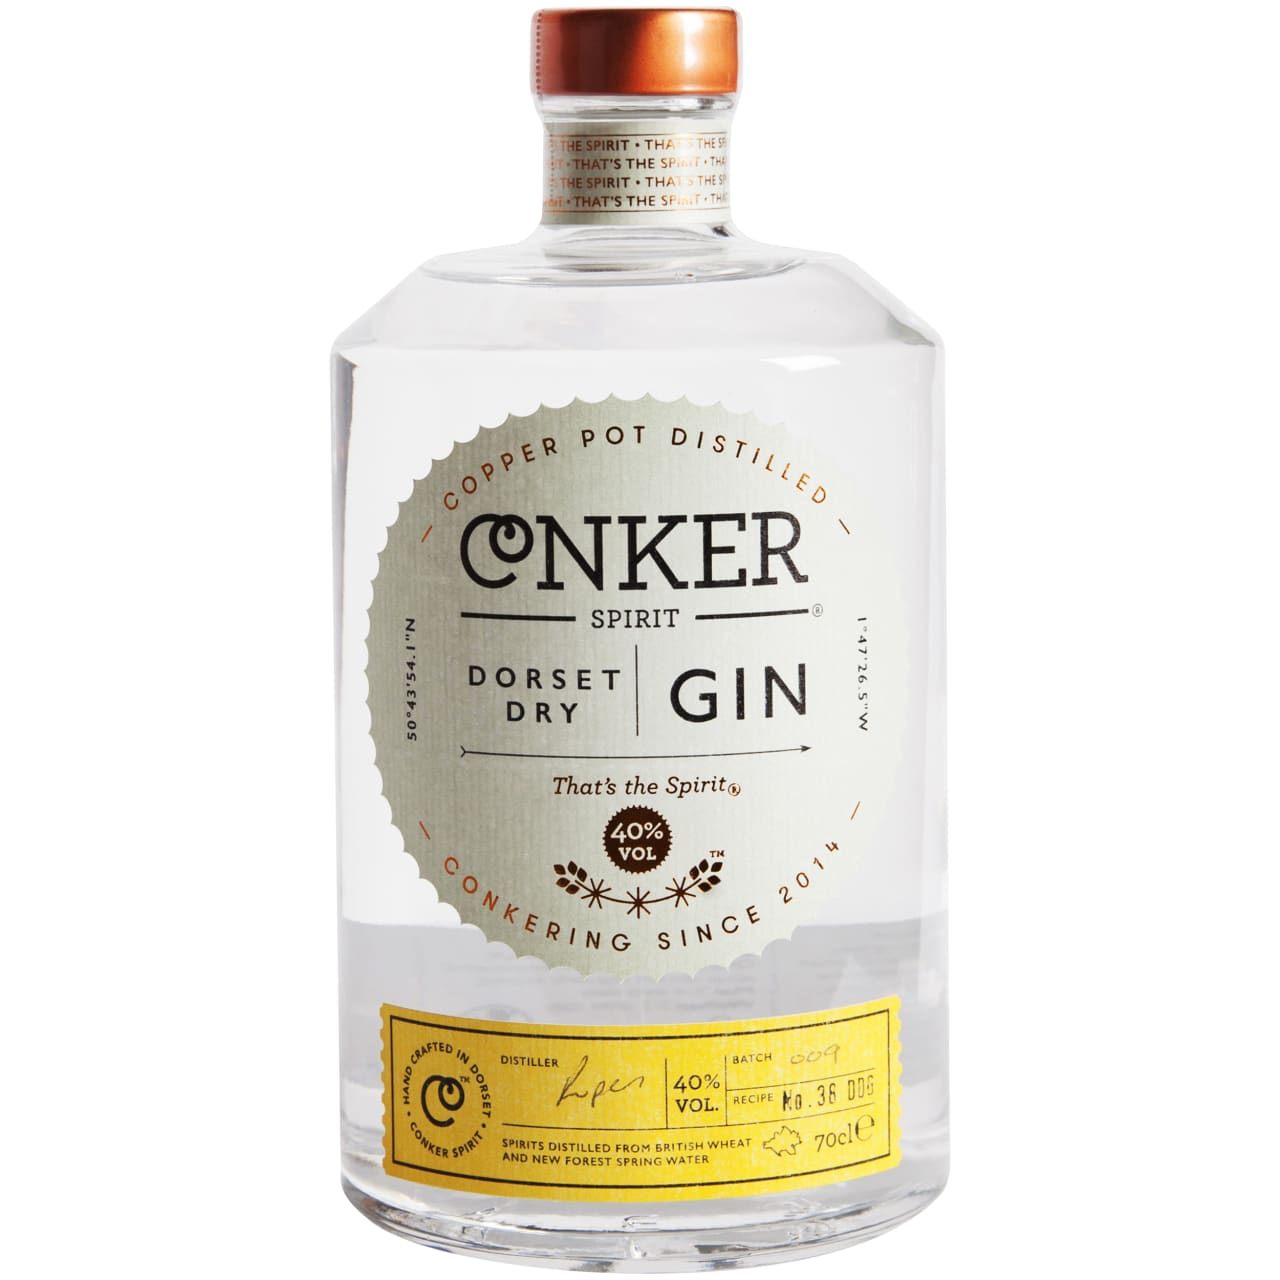 Product Image - Conker Dorset Dry Gin